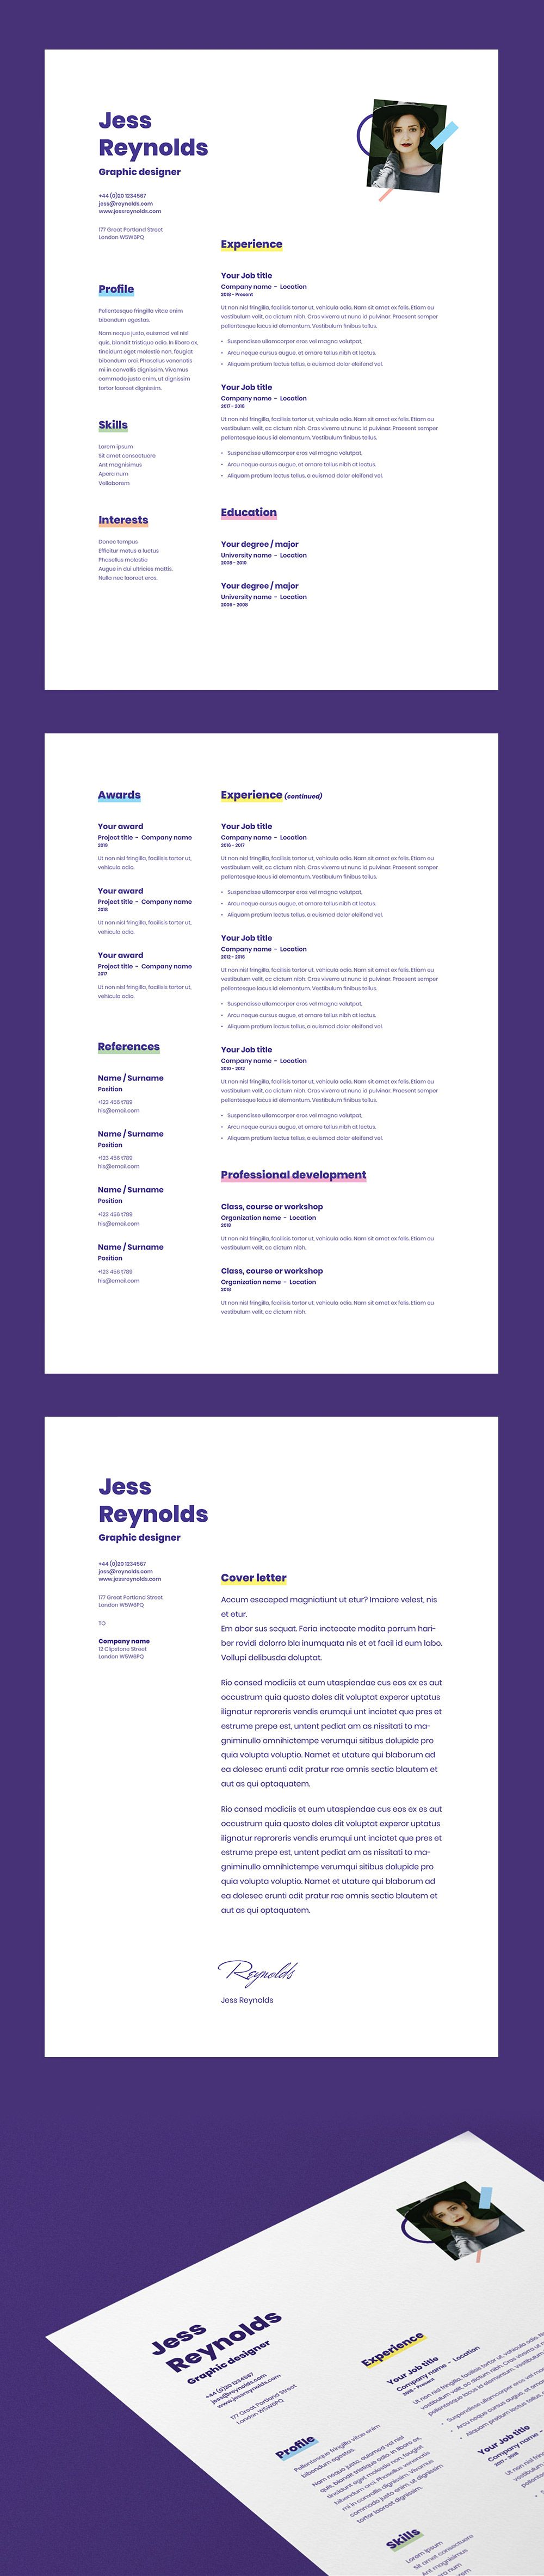 Cv Resume Template With Cover Letter For Word Indesign Photoshop A4 Us Letter Instant Download Cv Resume Template Resume Template Education Logo Design